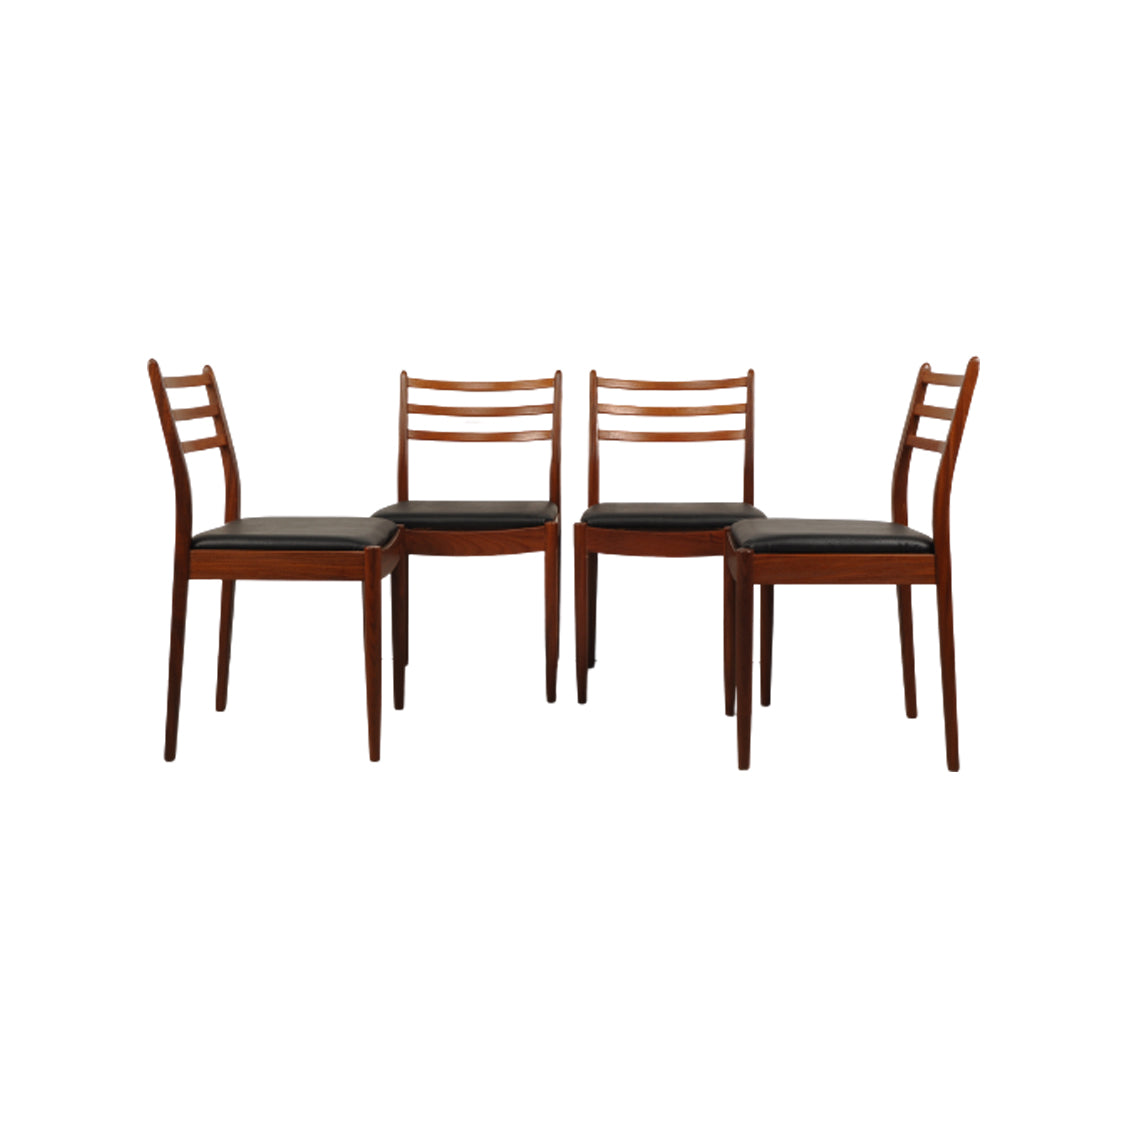 G Plan Fresco Ladderback Dining Chairs, Set of 4. Black vinyl and teak